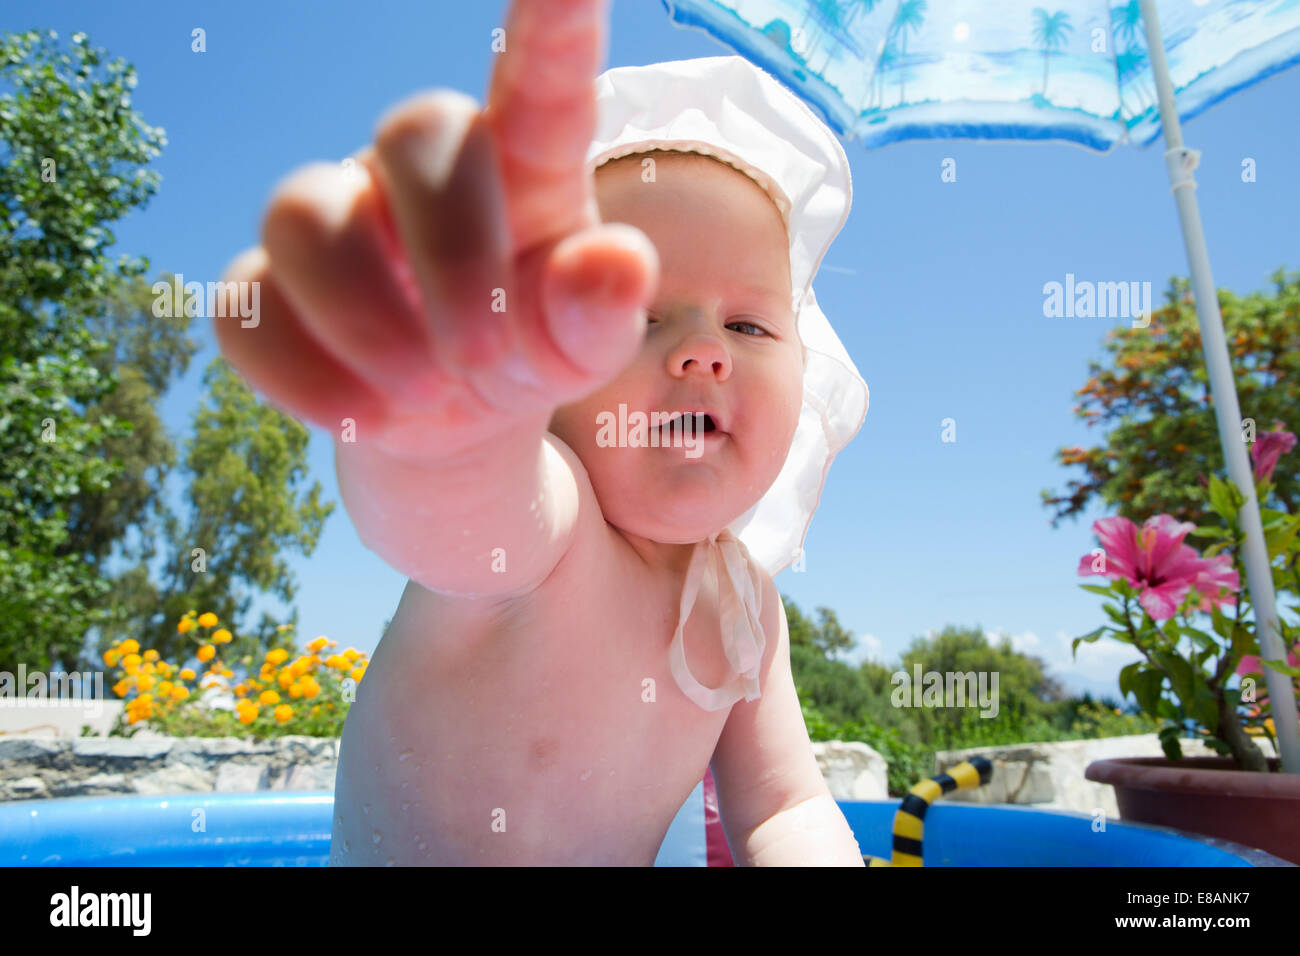 Baby girl in swimming pool pointing finger - Stock Image